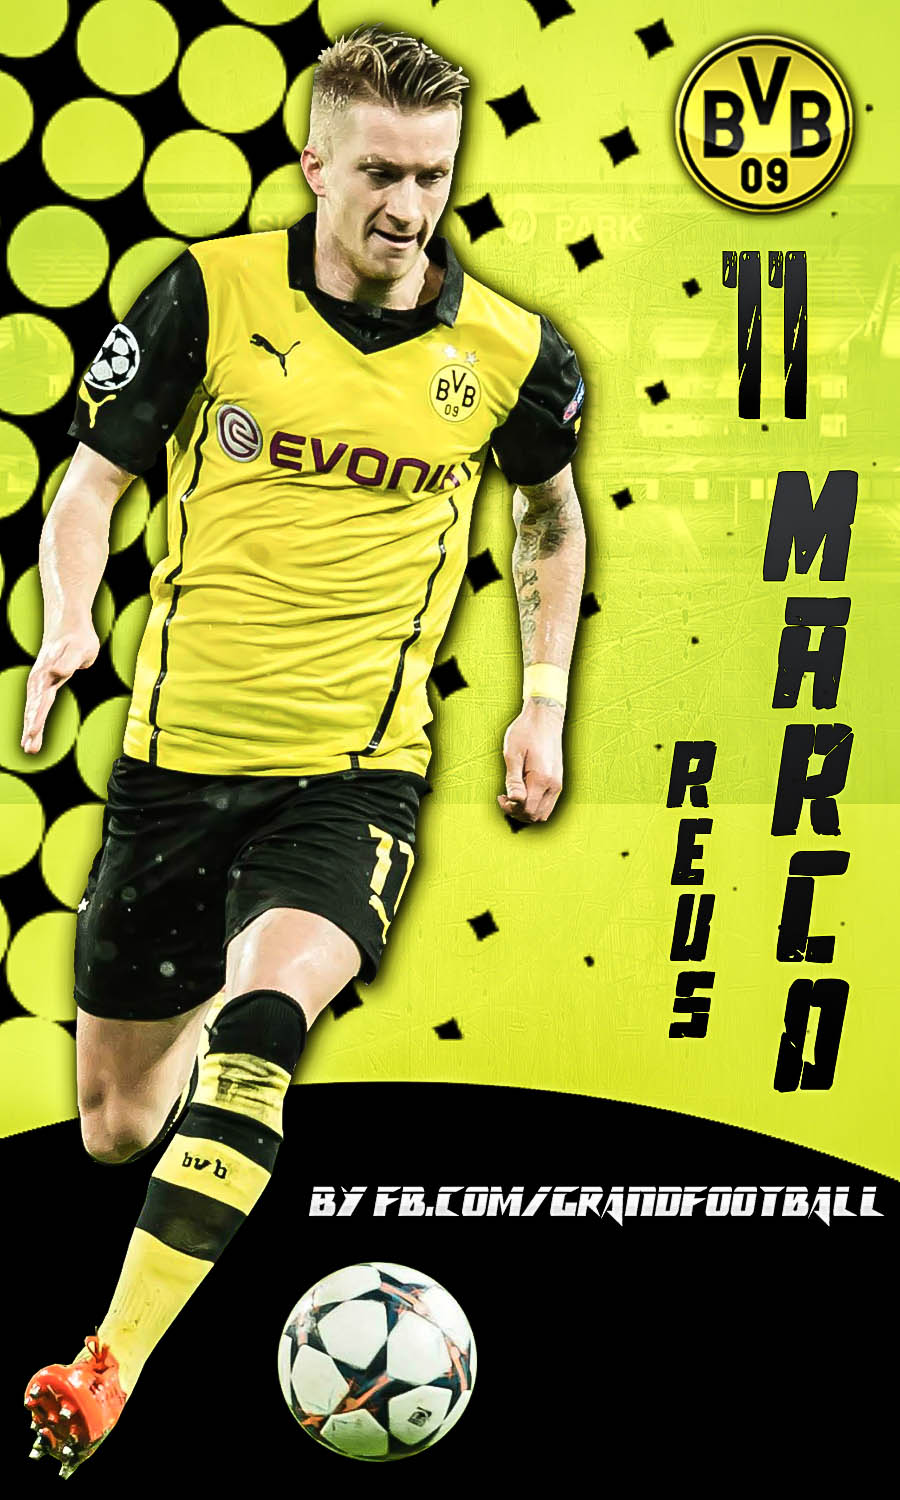 Marco reus by lionelkhouya on deviantart marco reus by lionelkhouya marco reus by lionelkhouya voltagebd Choice Image